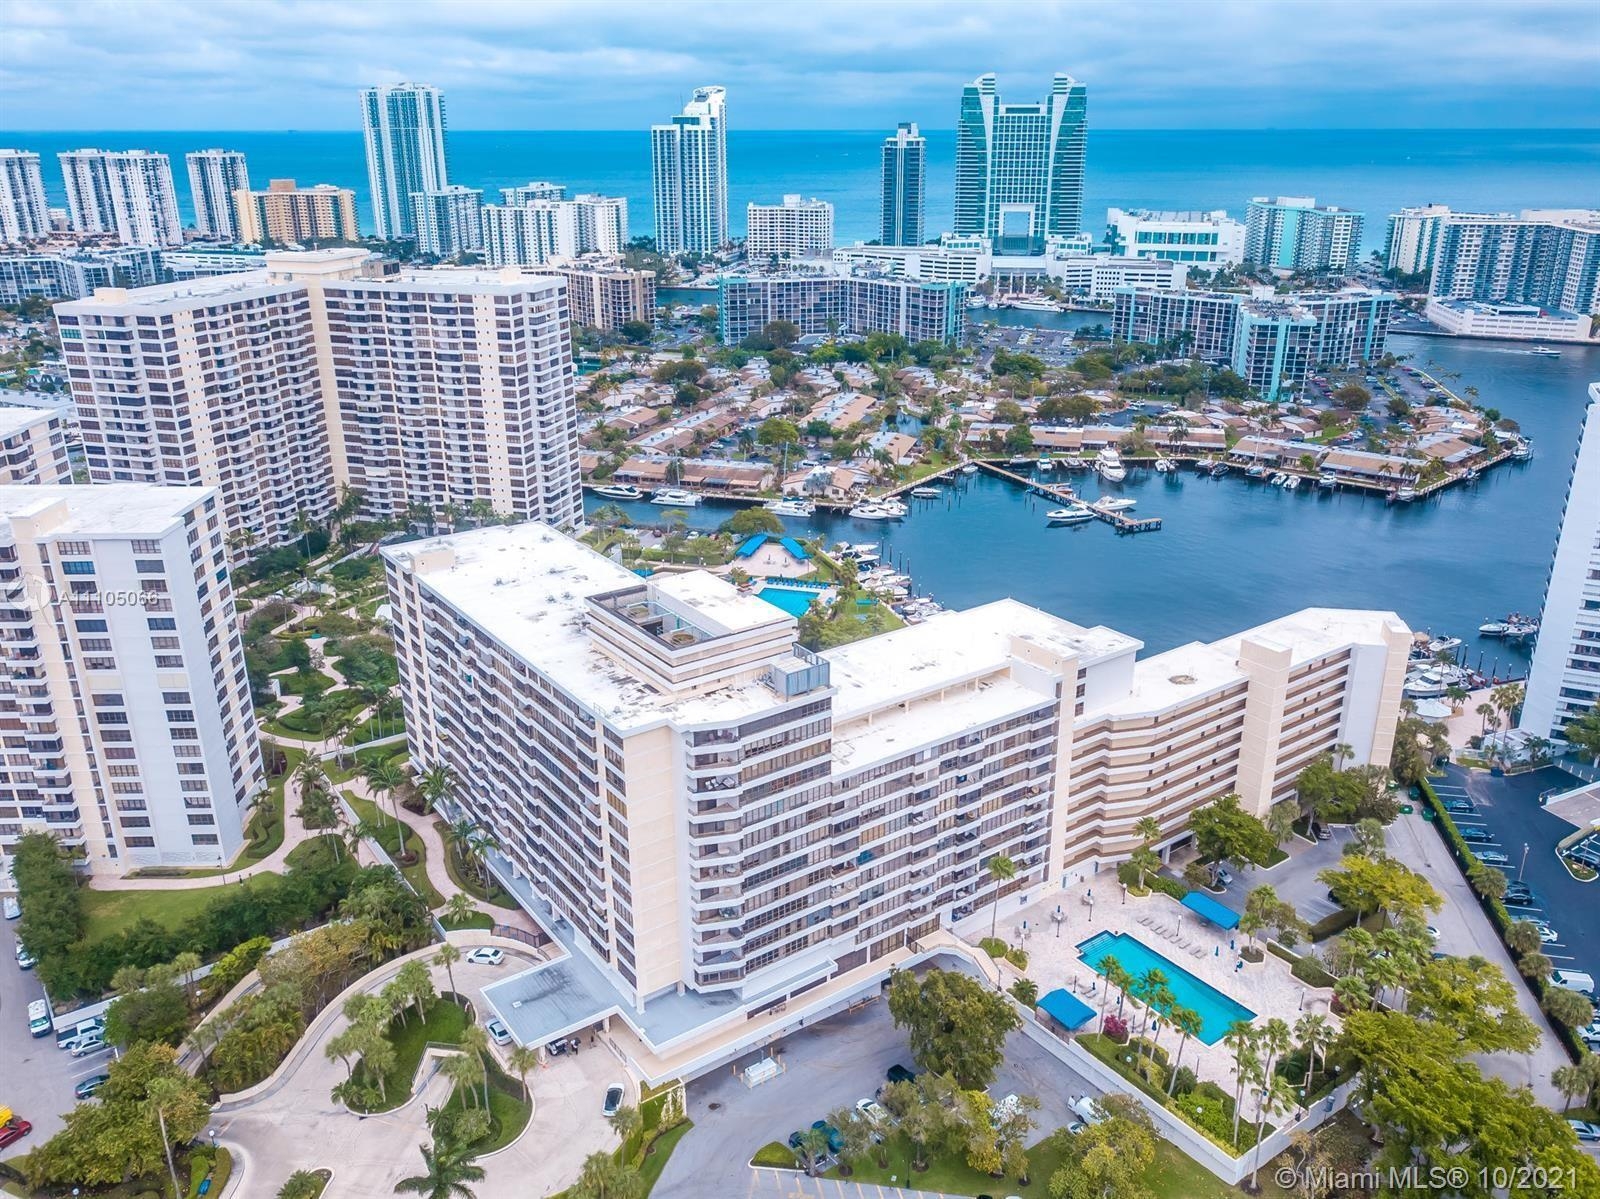 Specious unit 1,400 SqFt. 2 bed, 2 bath,in the heart of tree island,Unit has a tenants, they will st